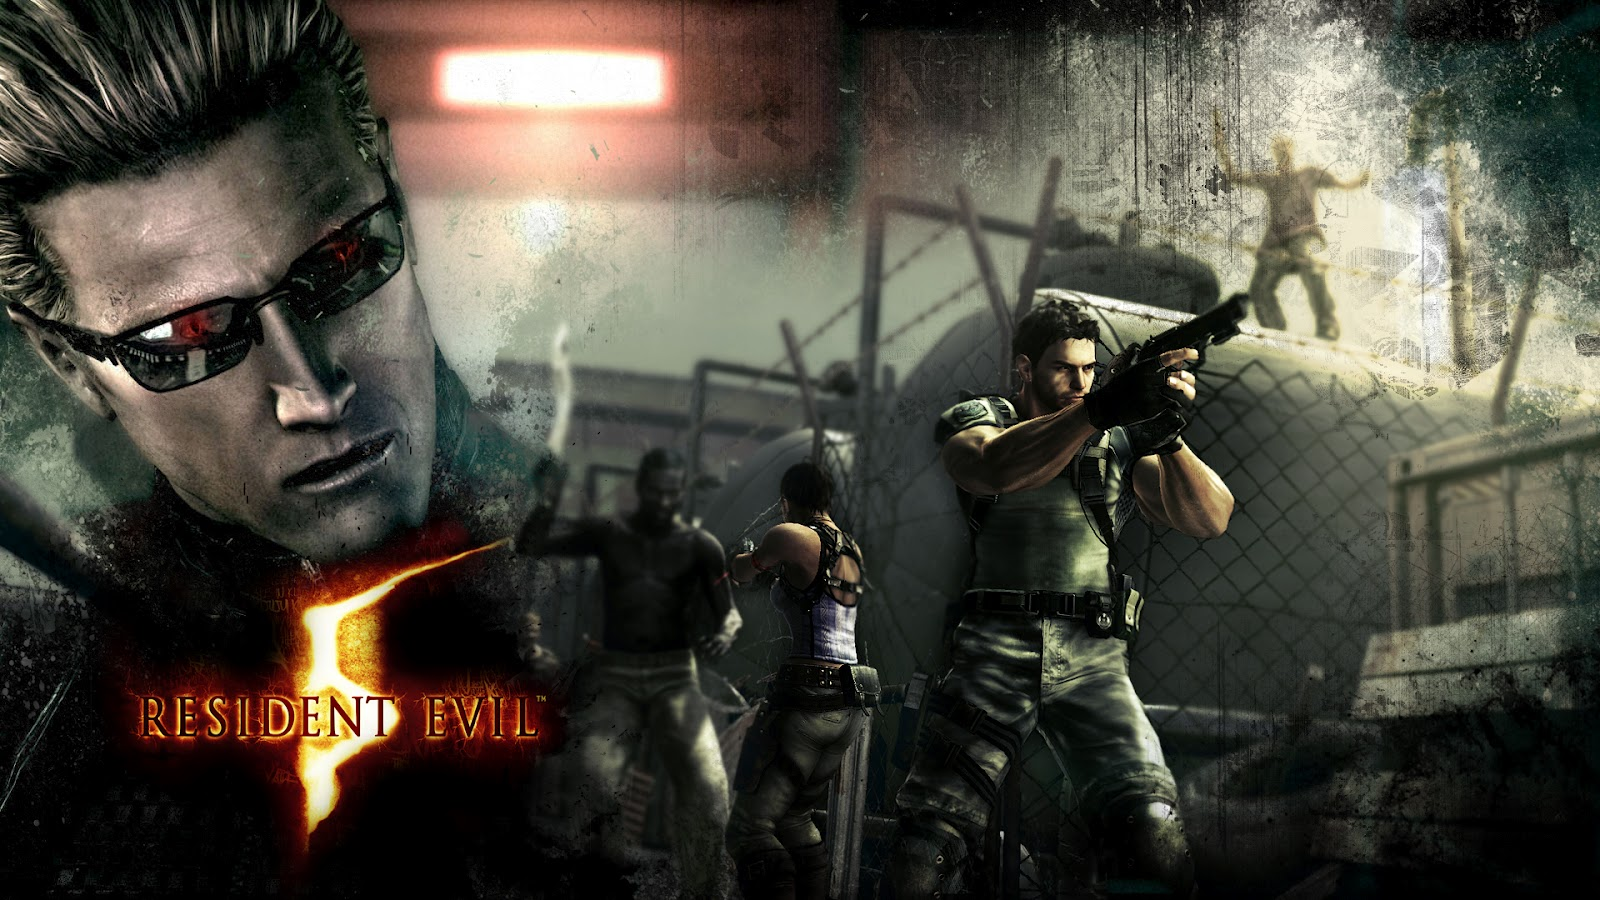 Wallpapers HD: Wallpapers Juego Resident Evil 4 Y 5 HD